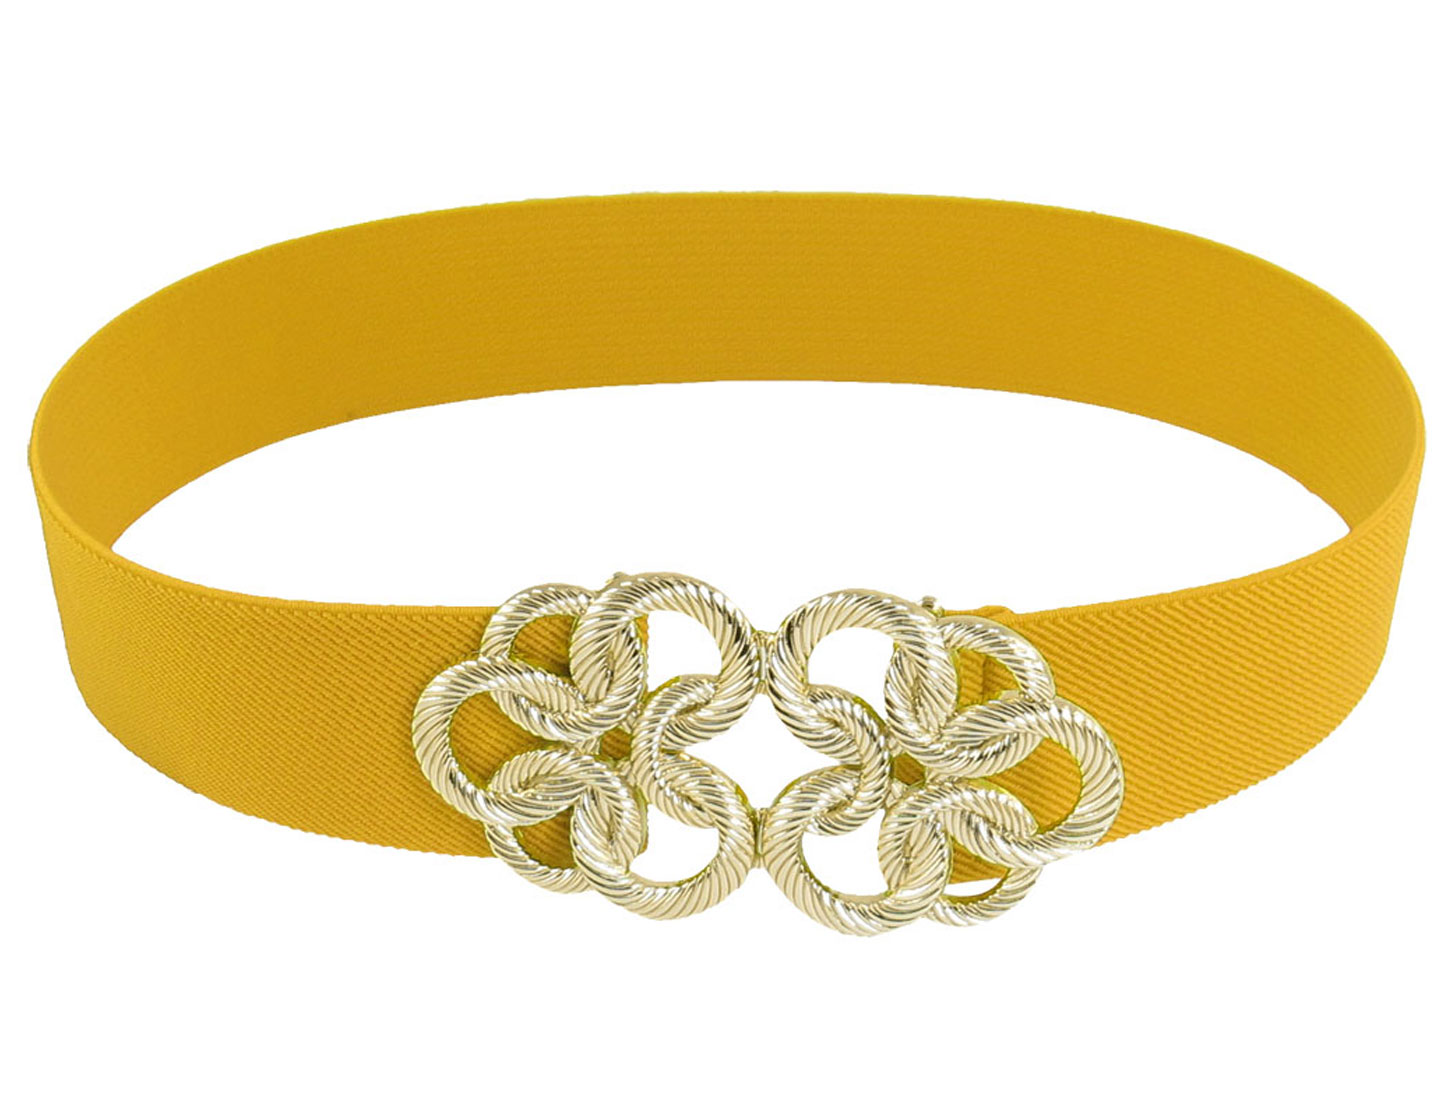 Gold Tone Twisted Circle Flower Buckle Yellow Elastic Waist Cinch Belt Band